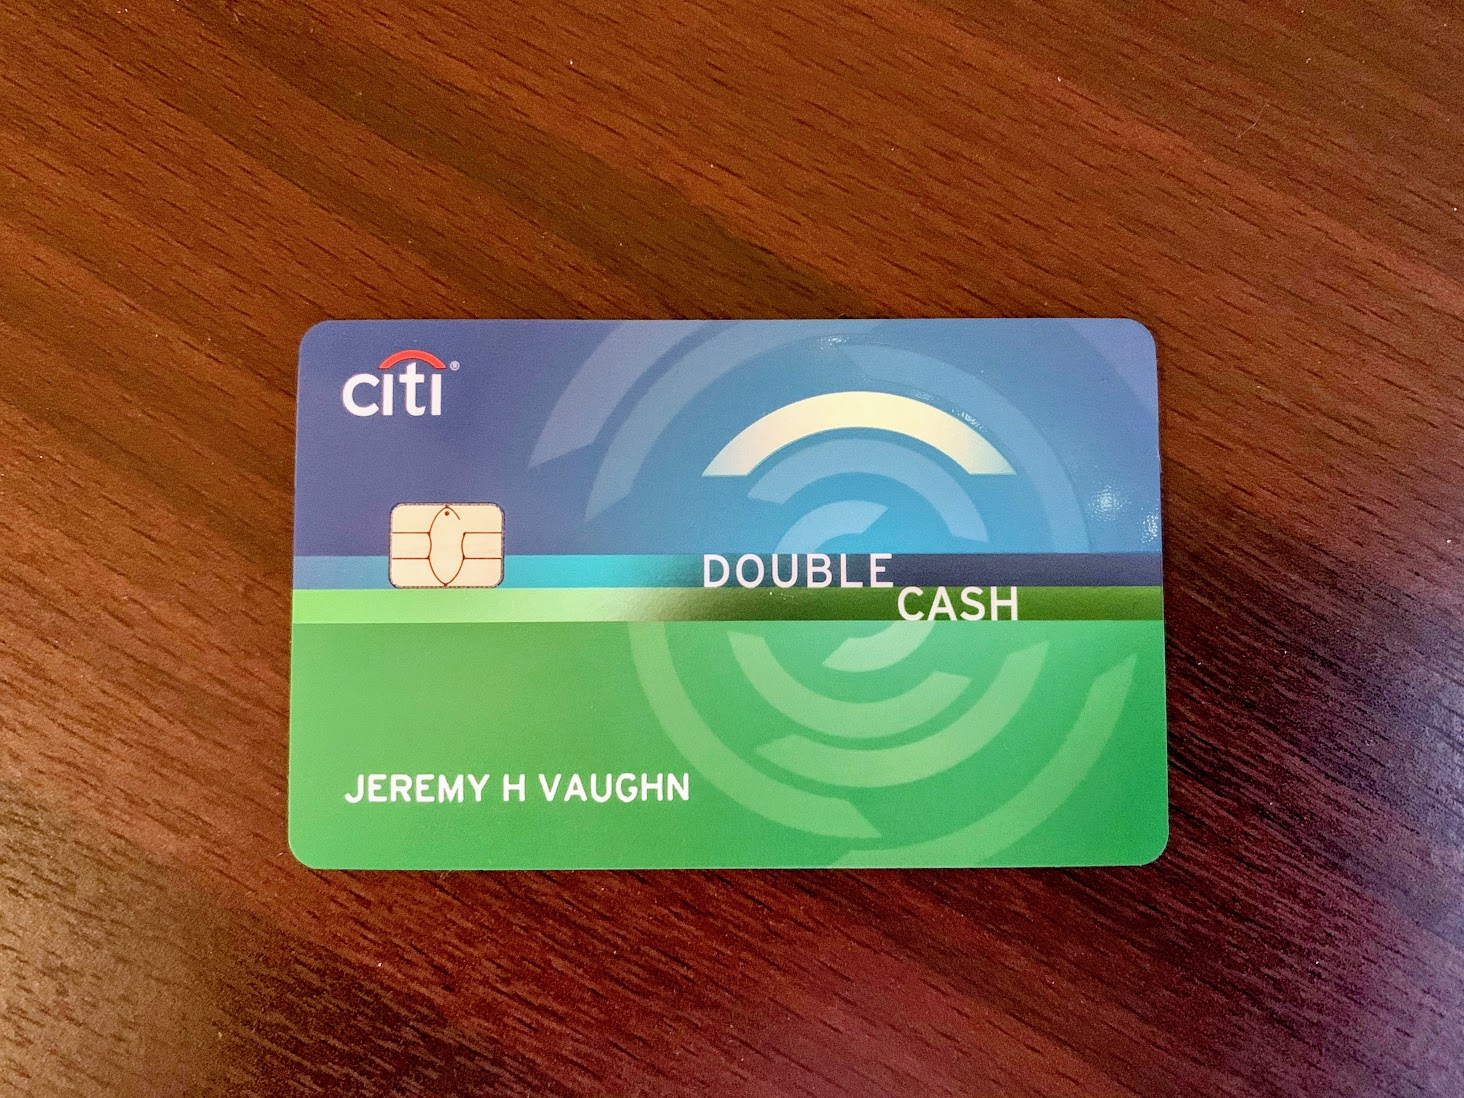 Citi Double Cash Plastiq Payments - The New Best Way to Pay Online?